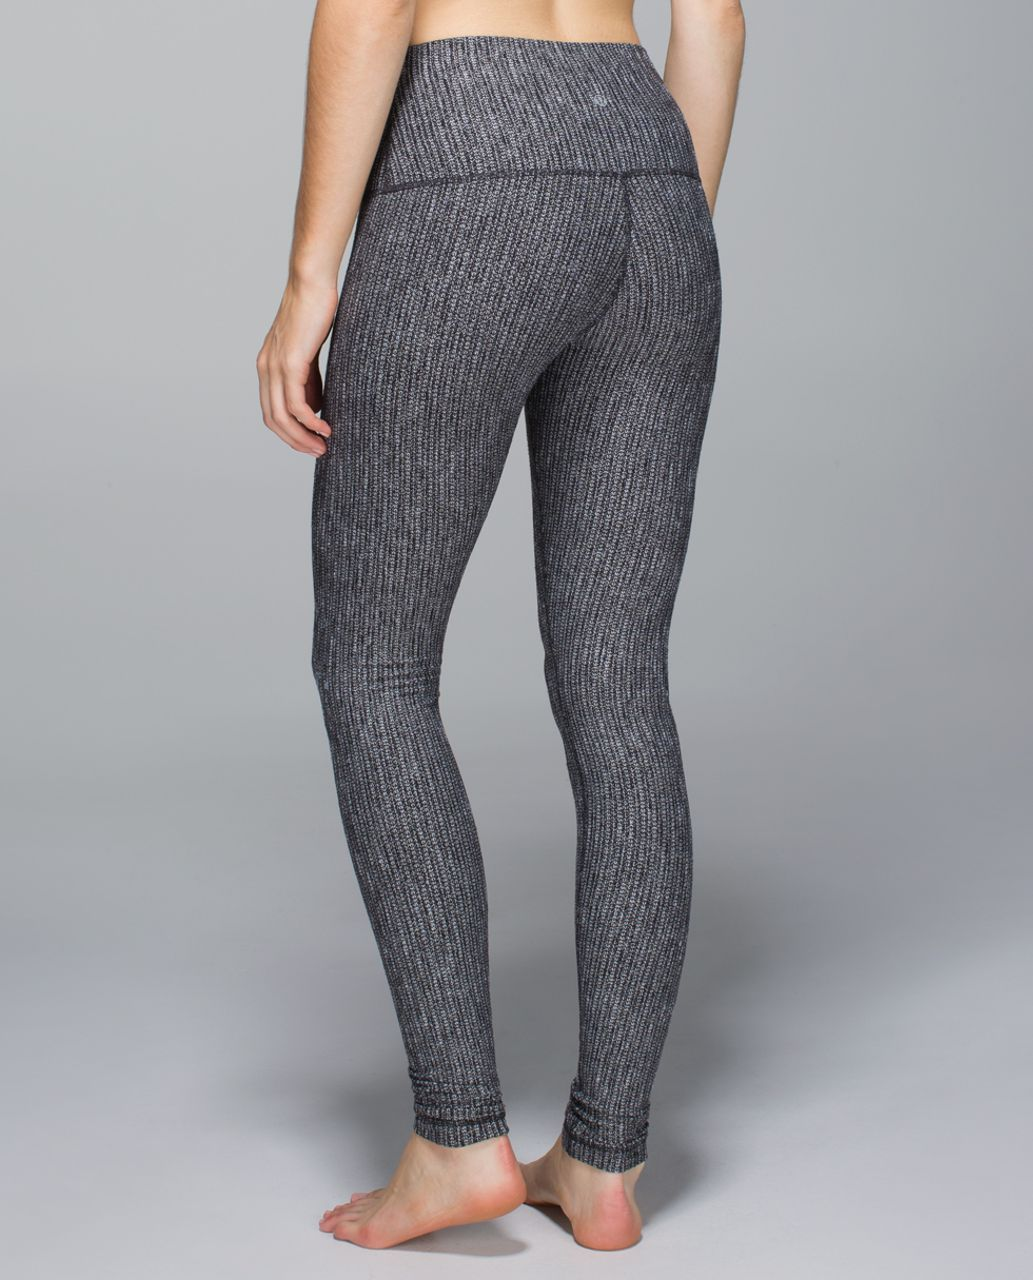 Lululemon Wunder Under Pant (Roll Down) - Coco Pique Black